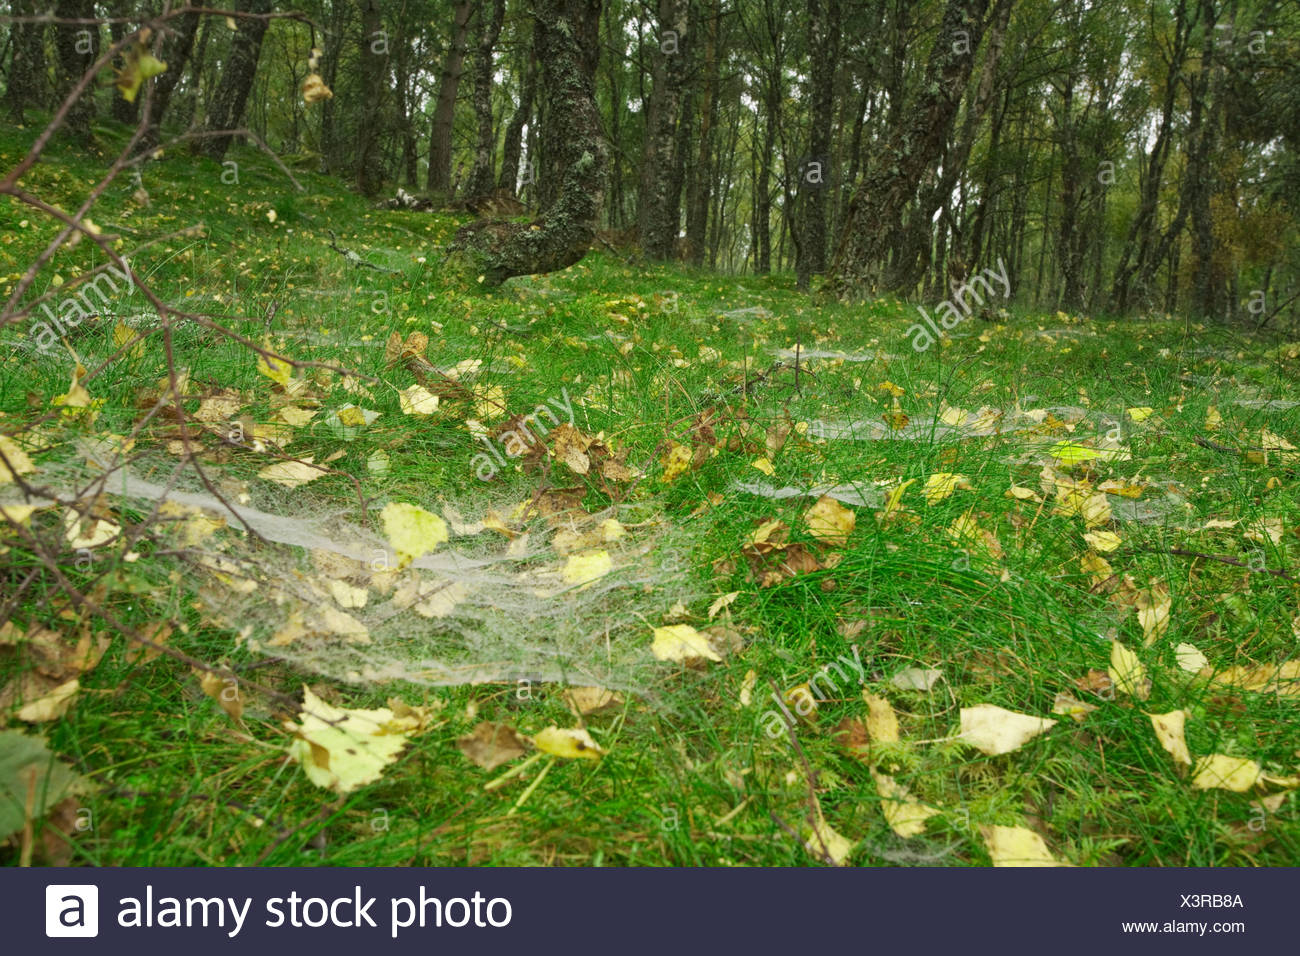 Mist water droplets on spiders webs on the forest floor in a silver birch wood, Boat of Garten, Cairngorms National Park, Scotti - Stock Image